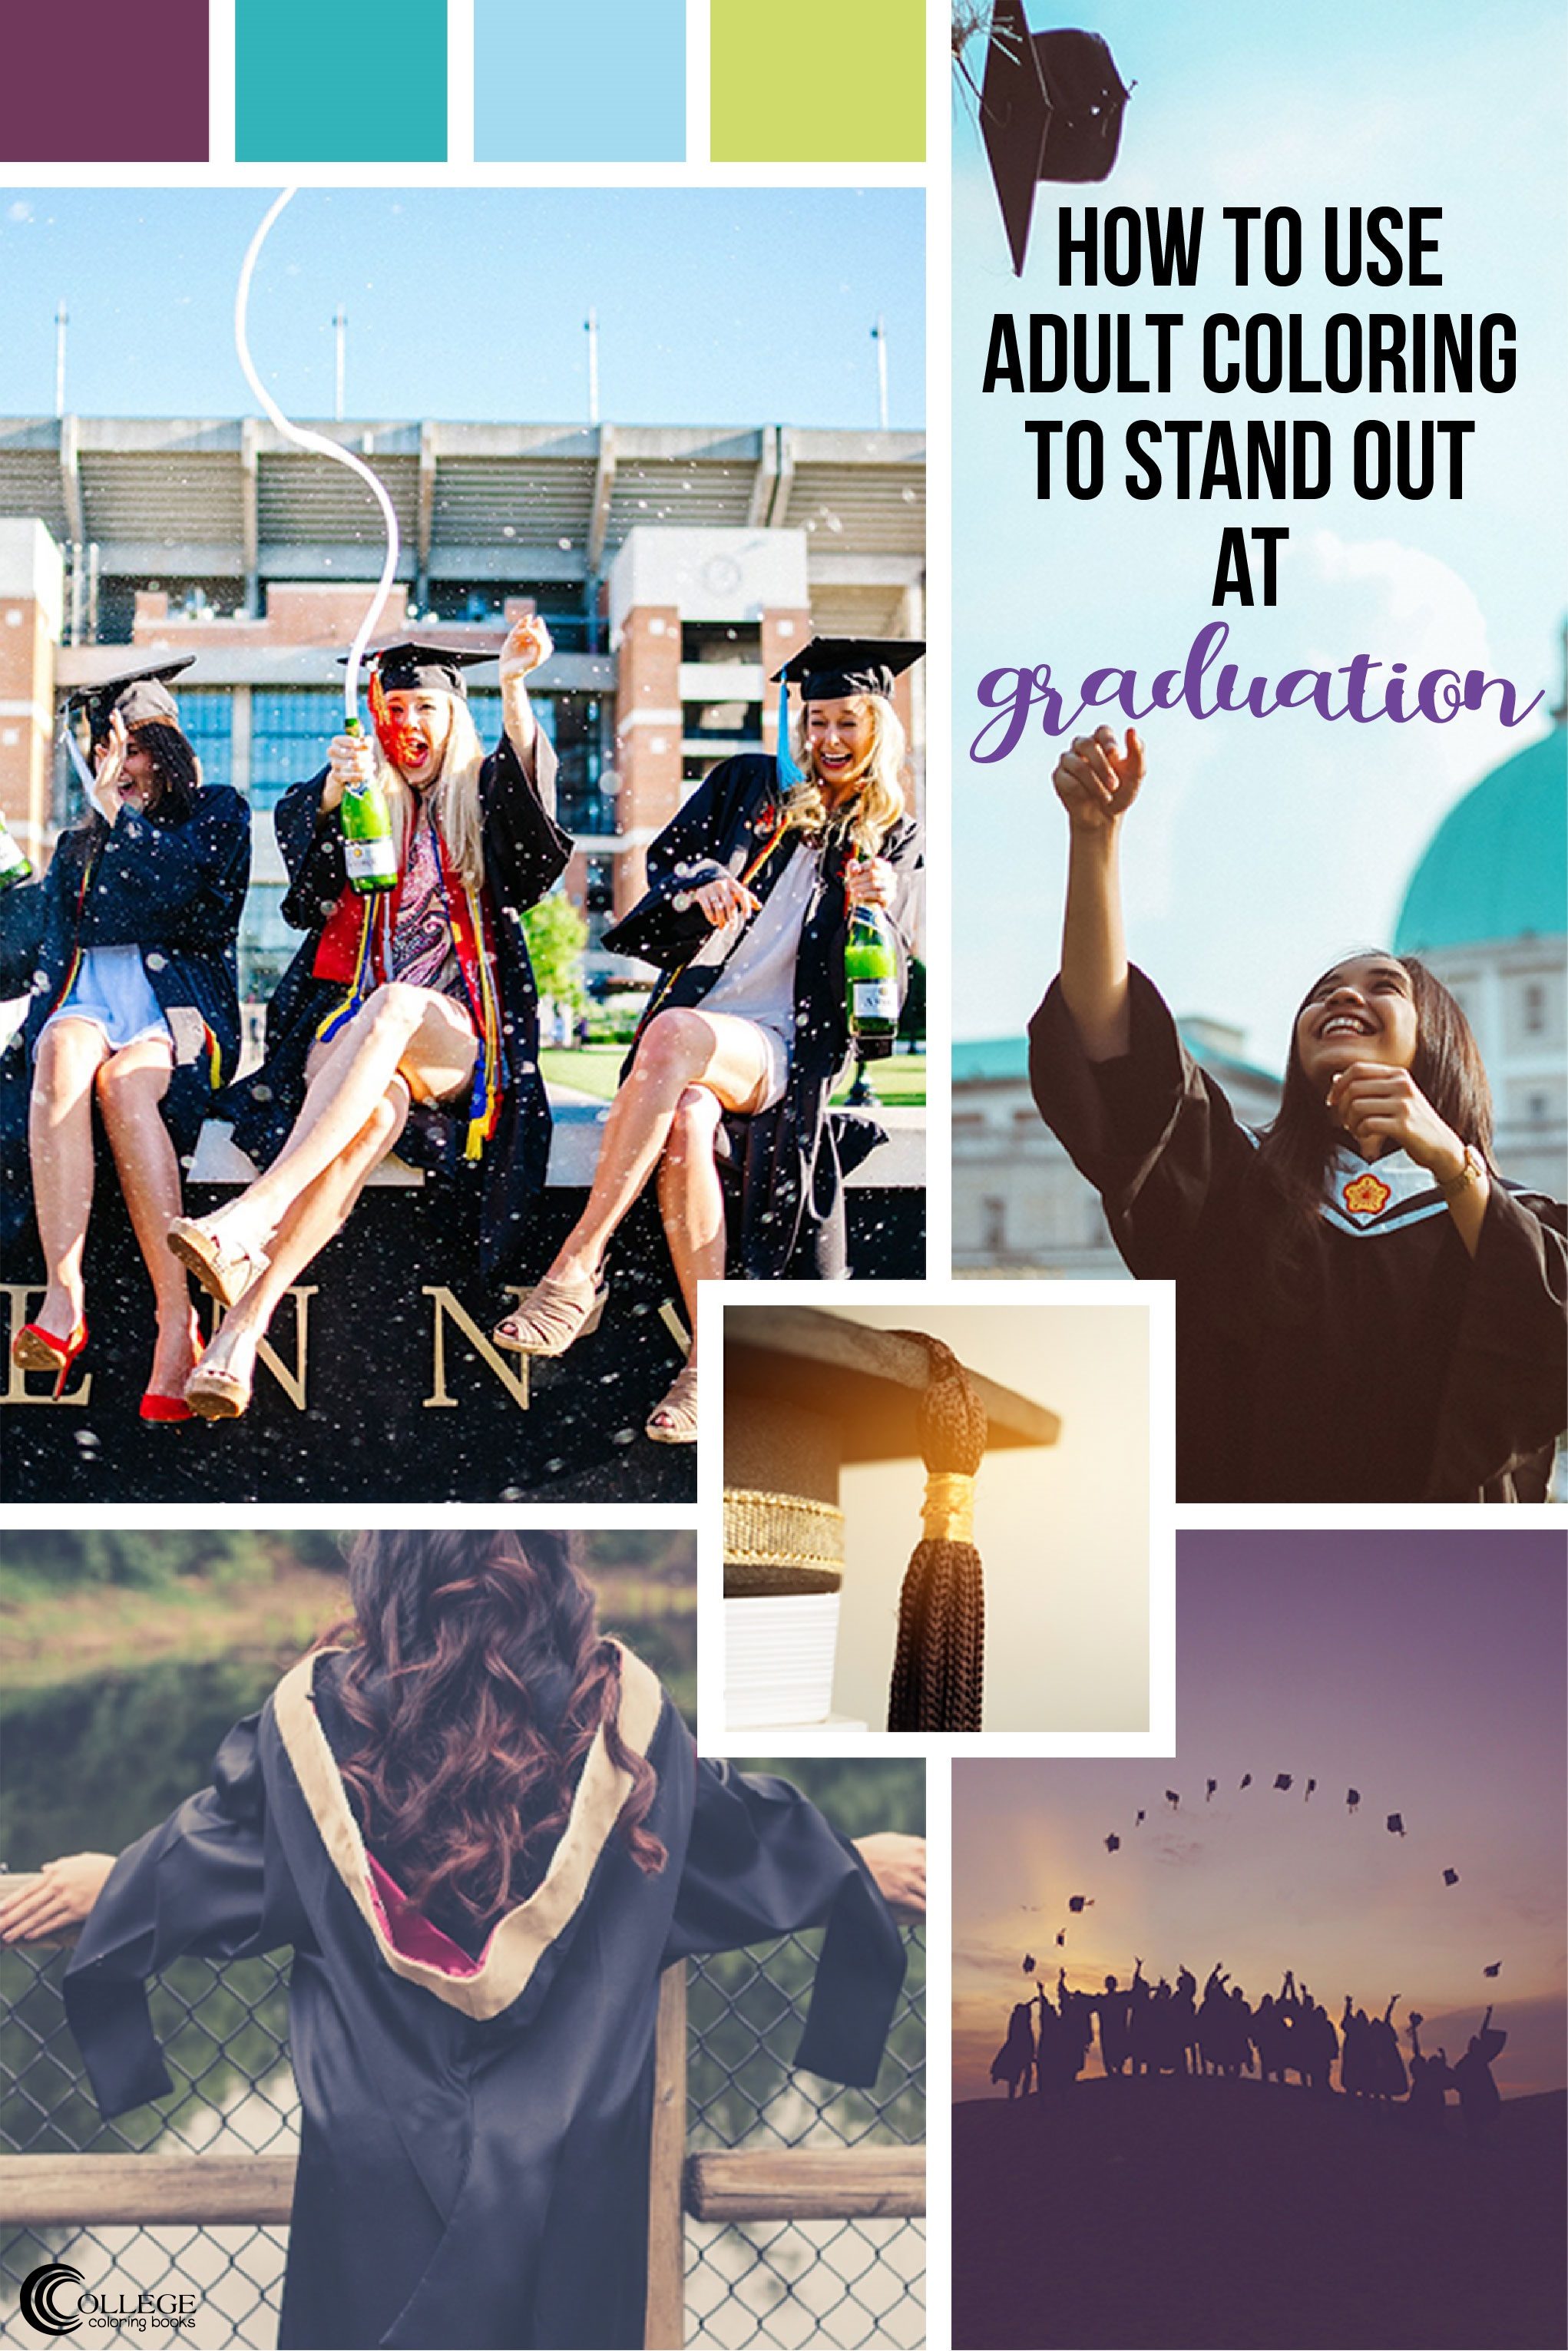 College Coloring Books: How to Use Coloring to Stand Out at Graduation